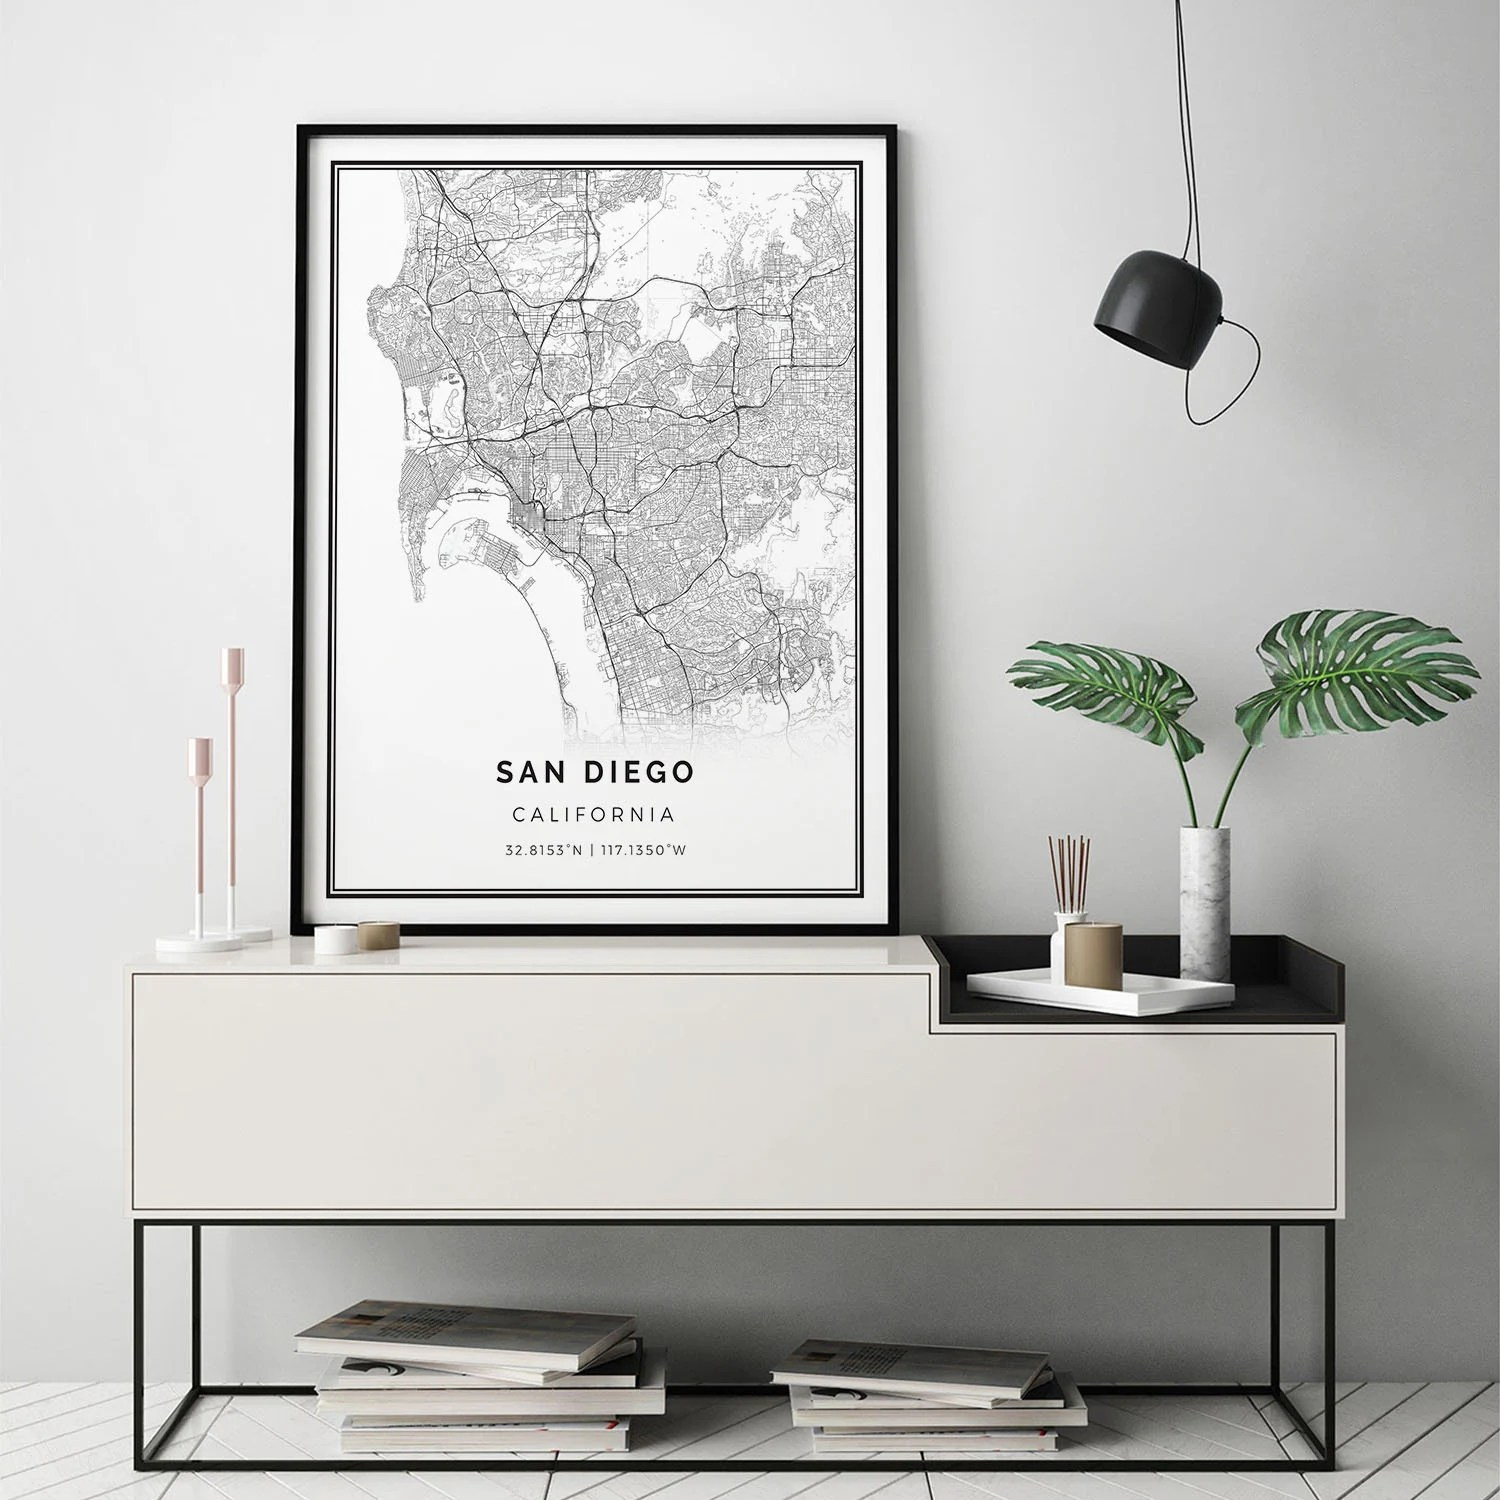 Scandinavian Furniture San Diego San Diego Map Print Scandinavian Wall Art Poster City Maps Artwork California Gifts Map Gifts For Him M8